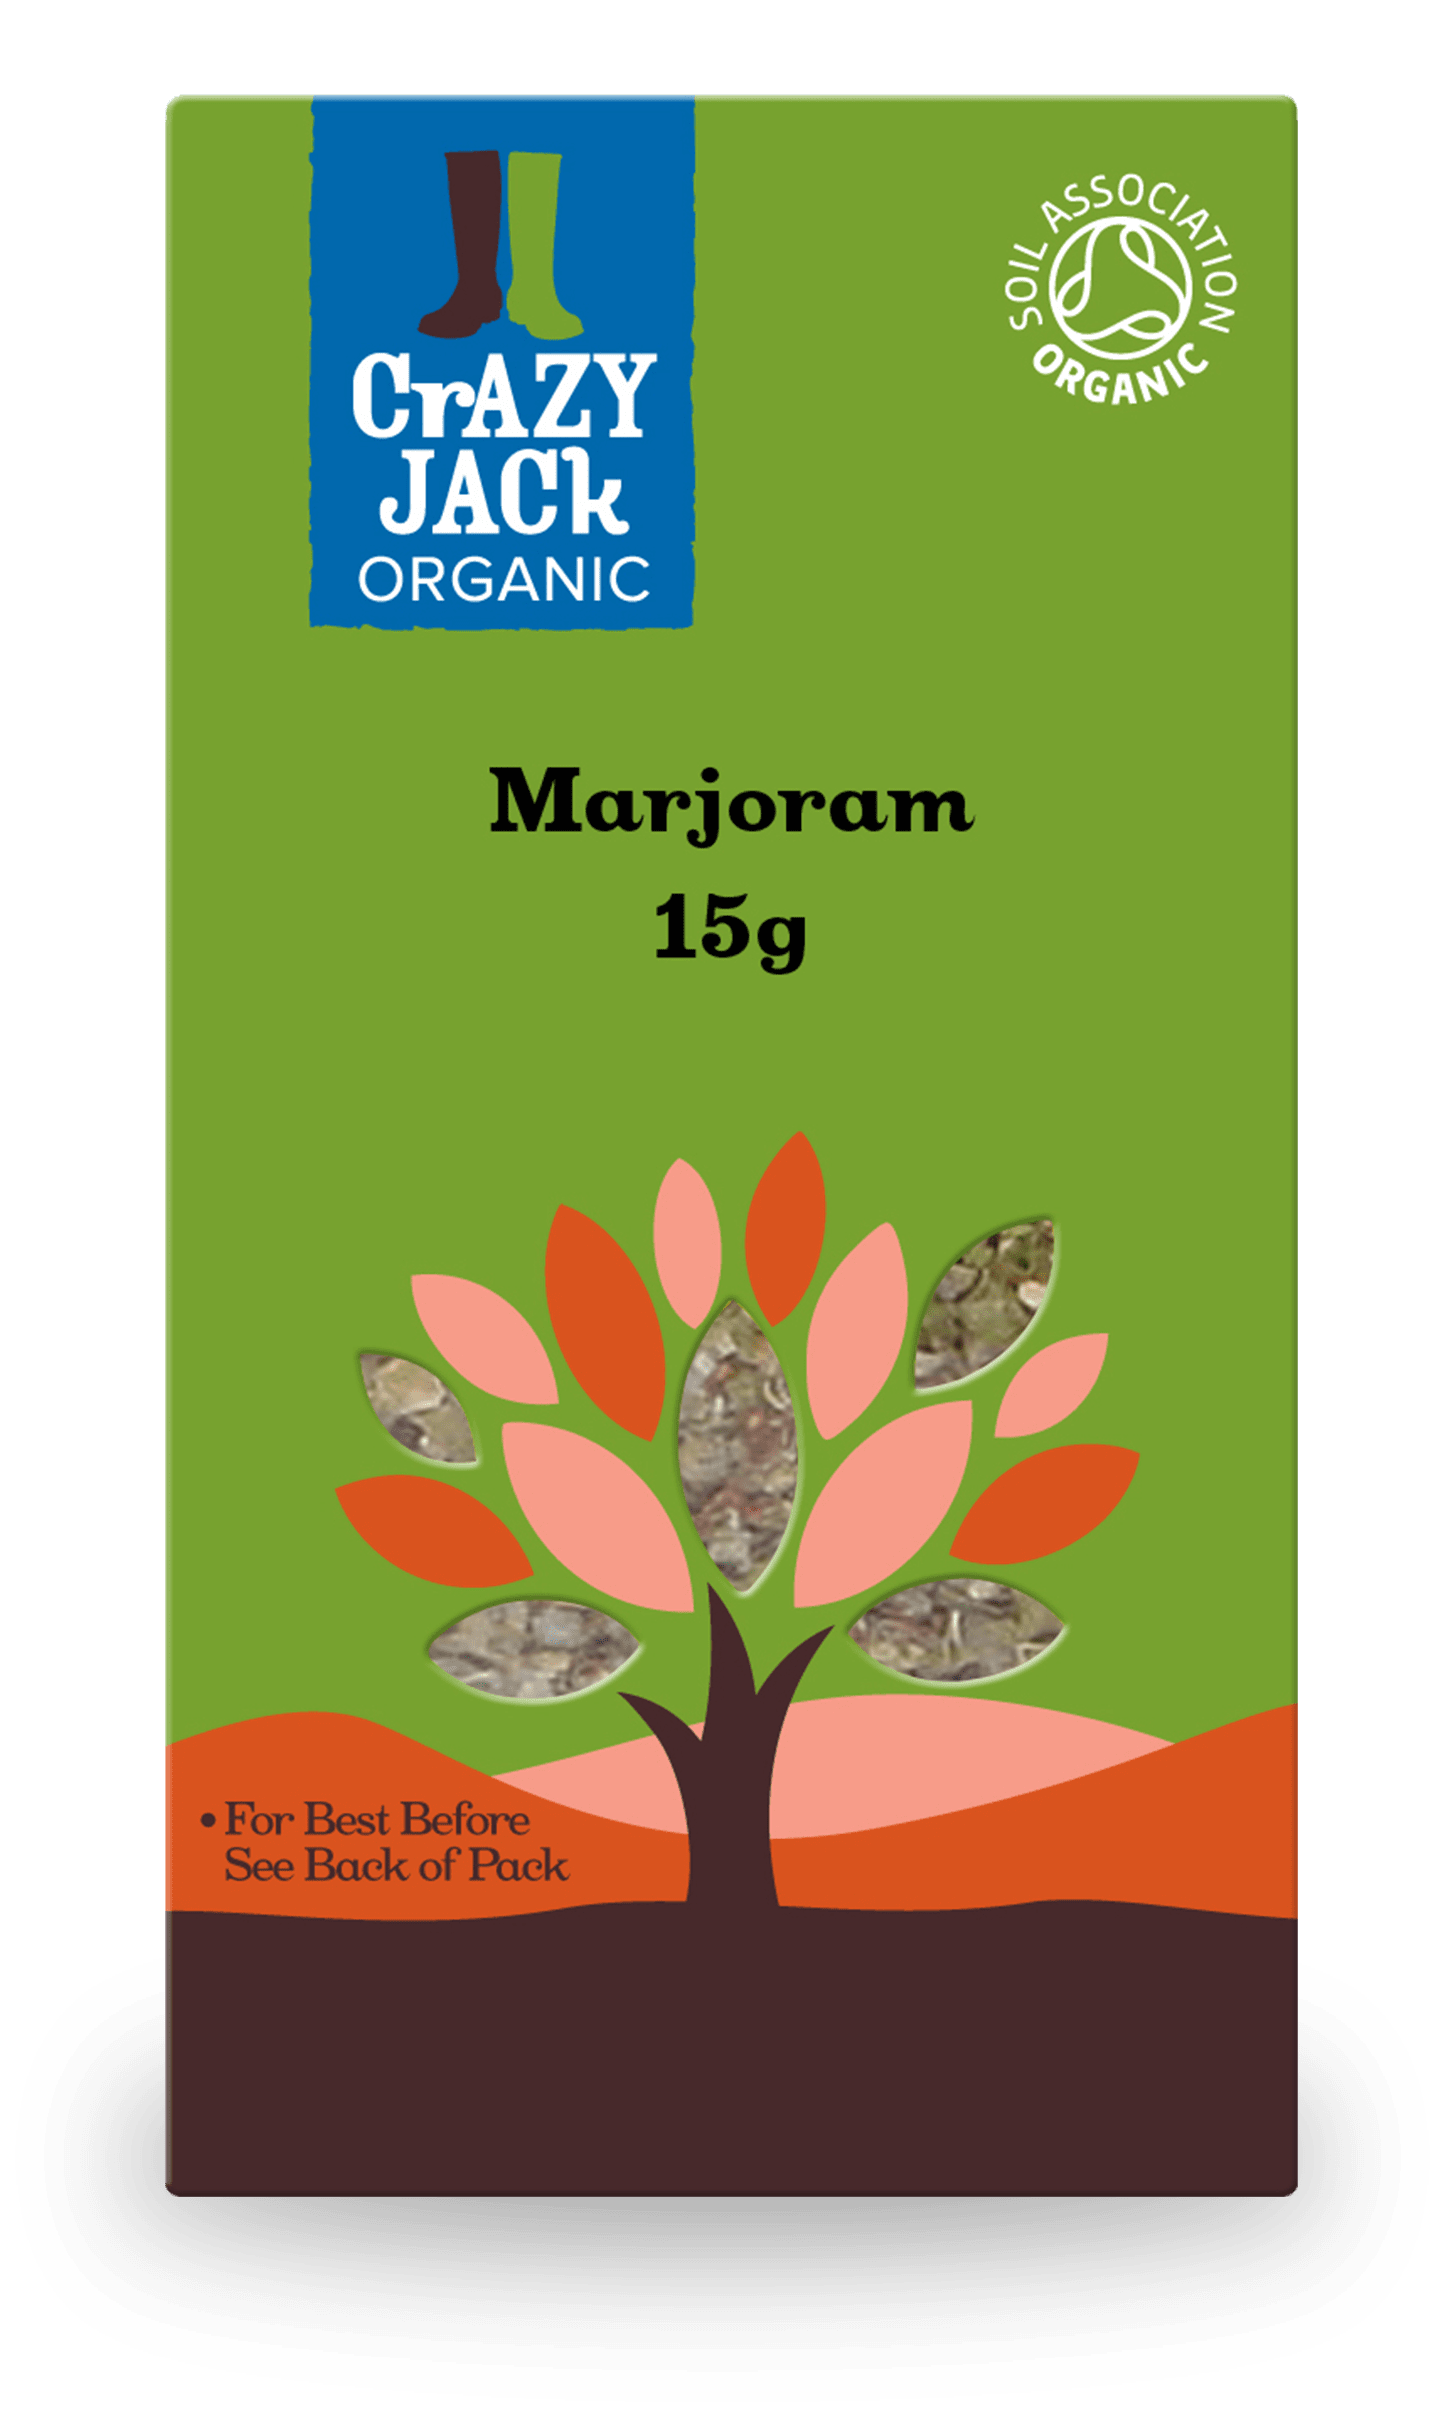 15g packet of marjoram